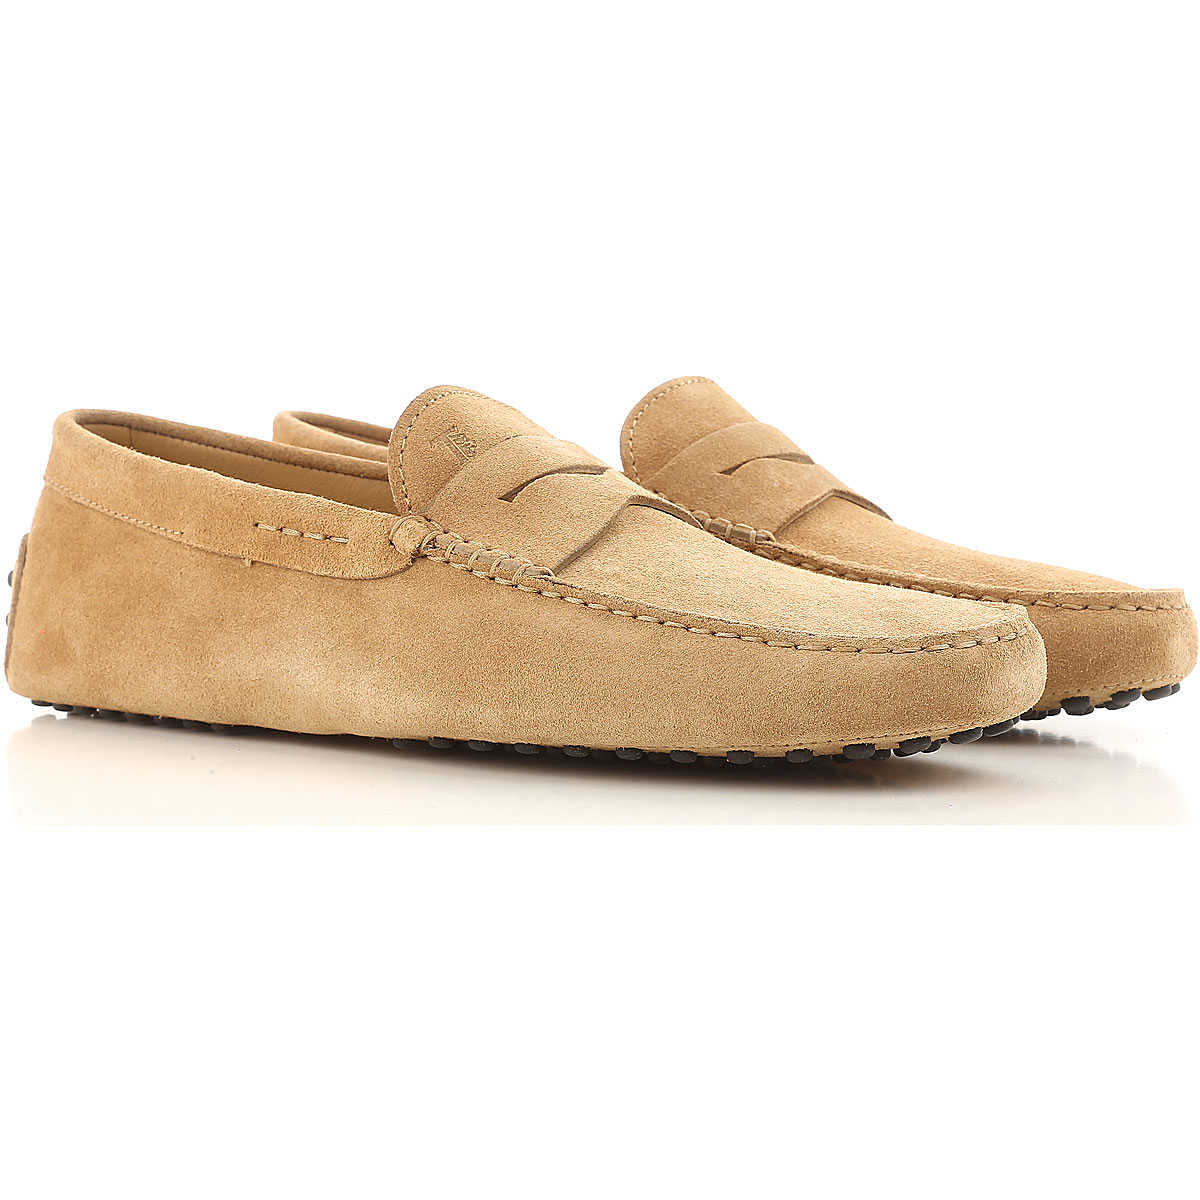 Tods Loafers for Men On Sale cookie UK - GOOFASH